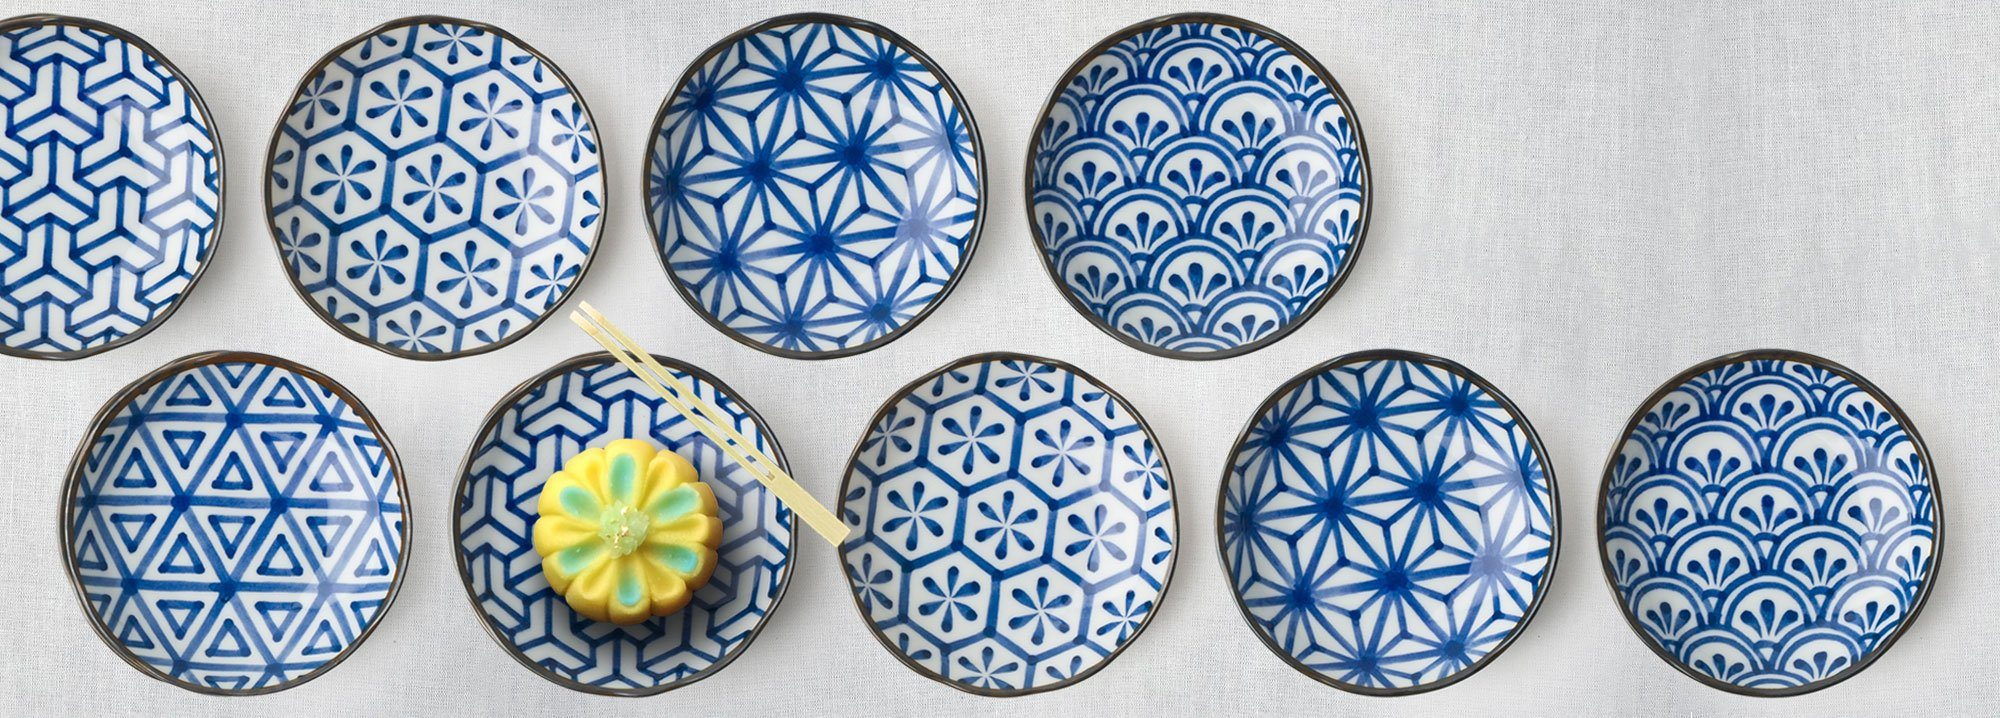 Monyou Blue Amp White Japanese Dishes Plates Bowls